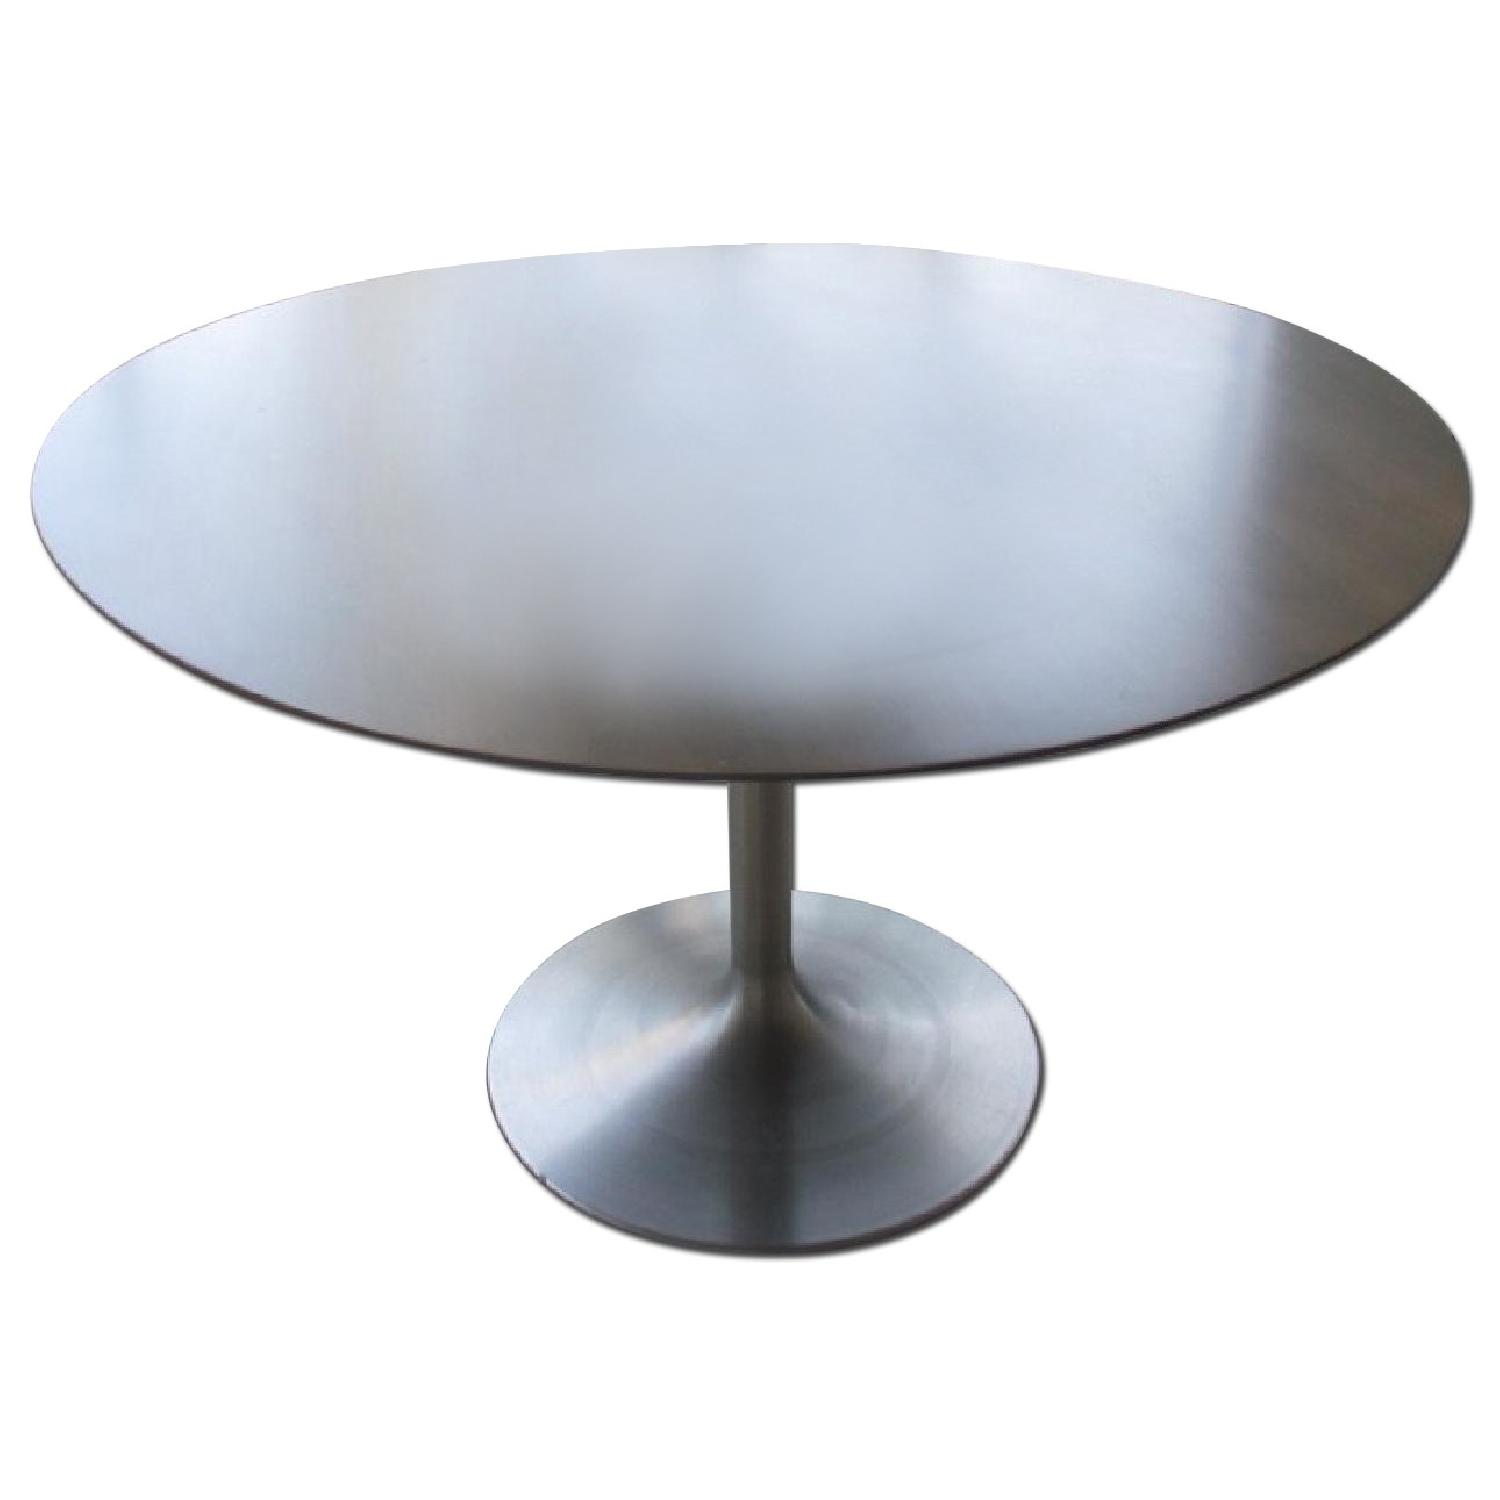 Room & Board Aria Dining Table - image-0